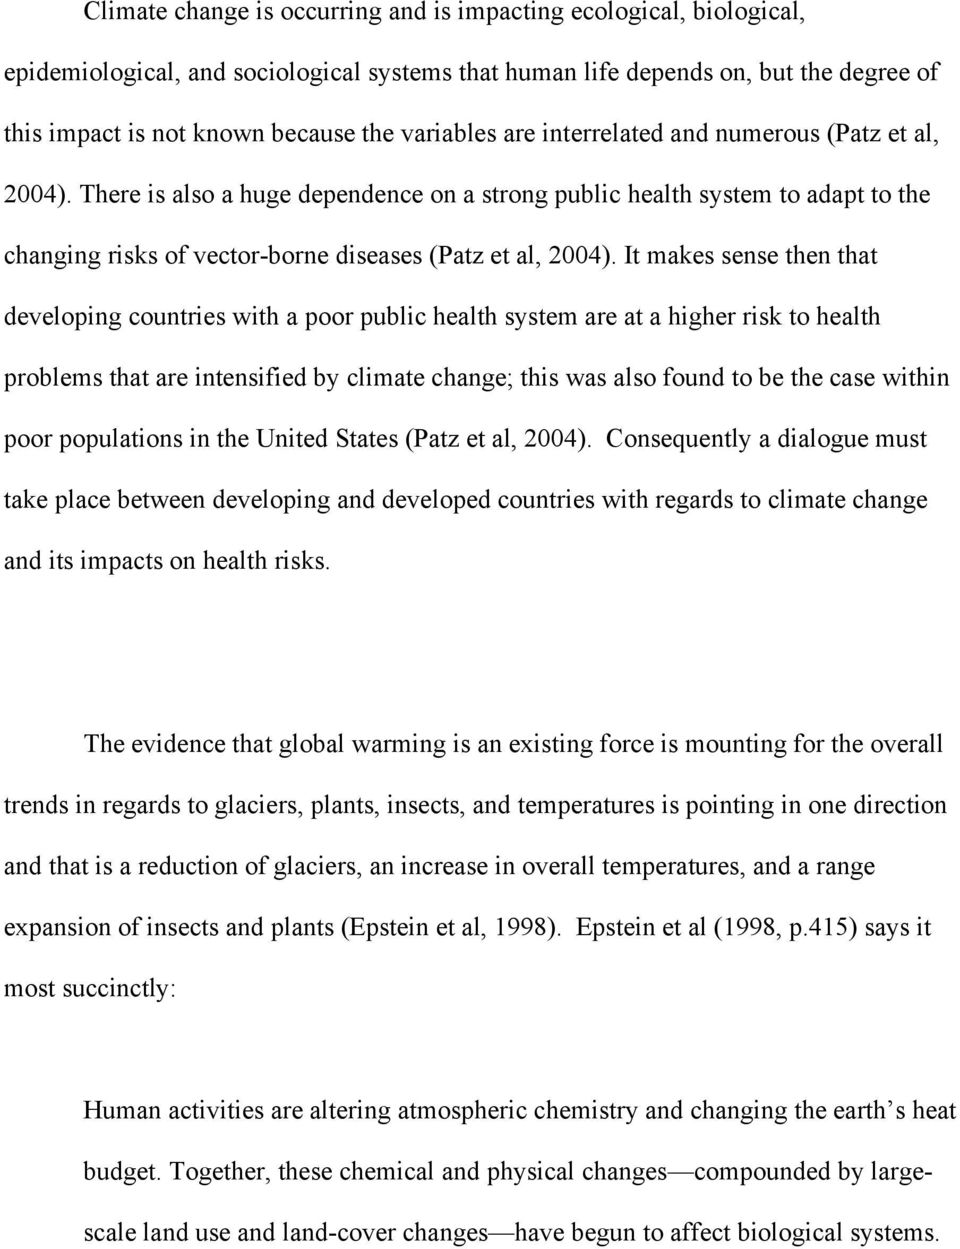 It makes sense then that developing countries with a poor public health system are at a higher risk to health problems that are intensified by climate change; this was also found to be the case